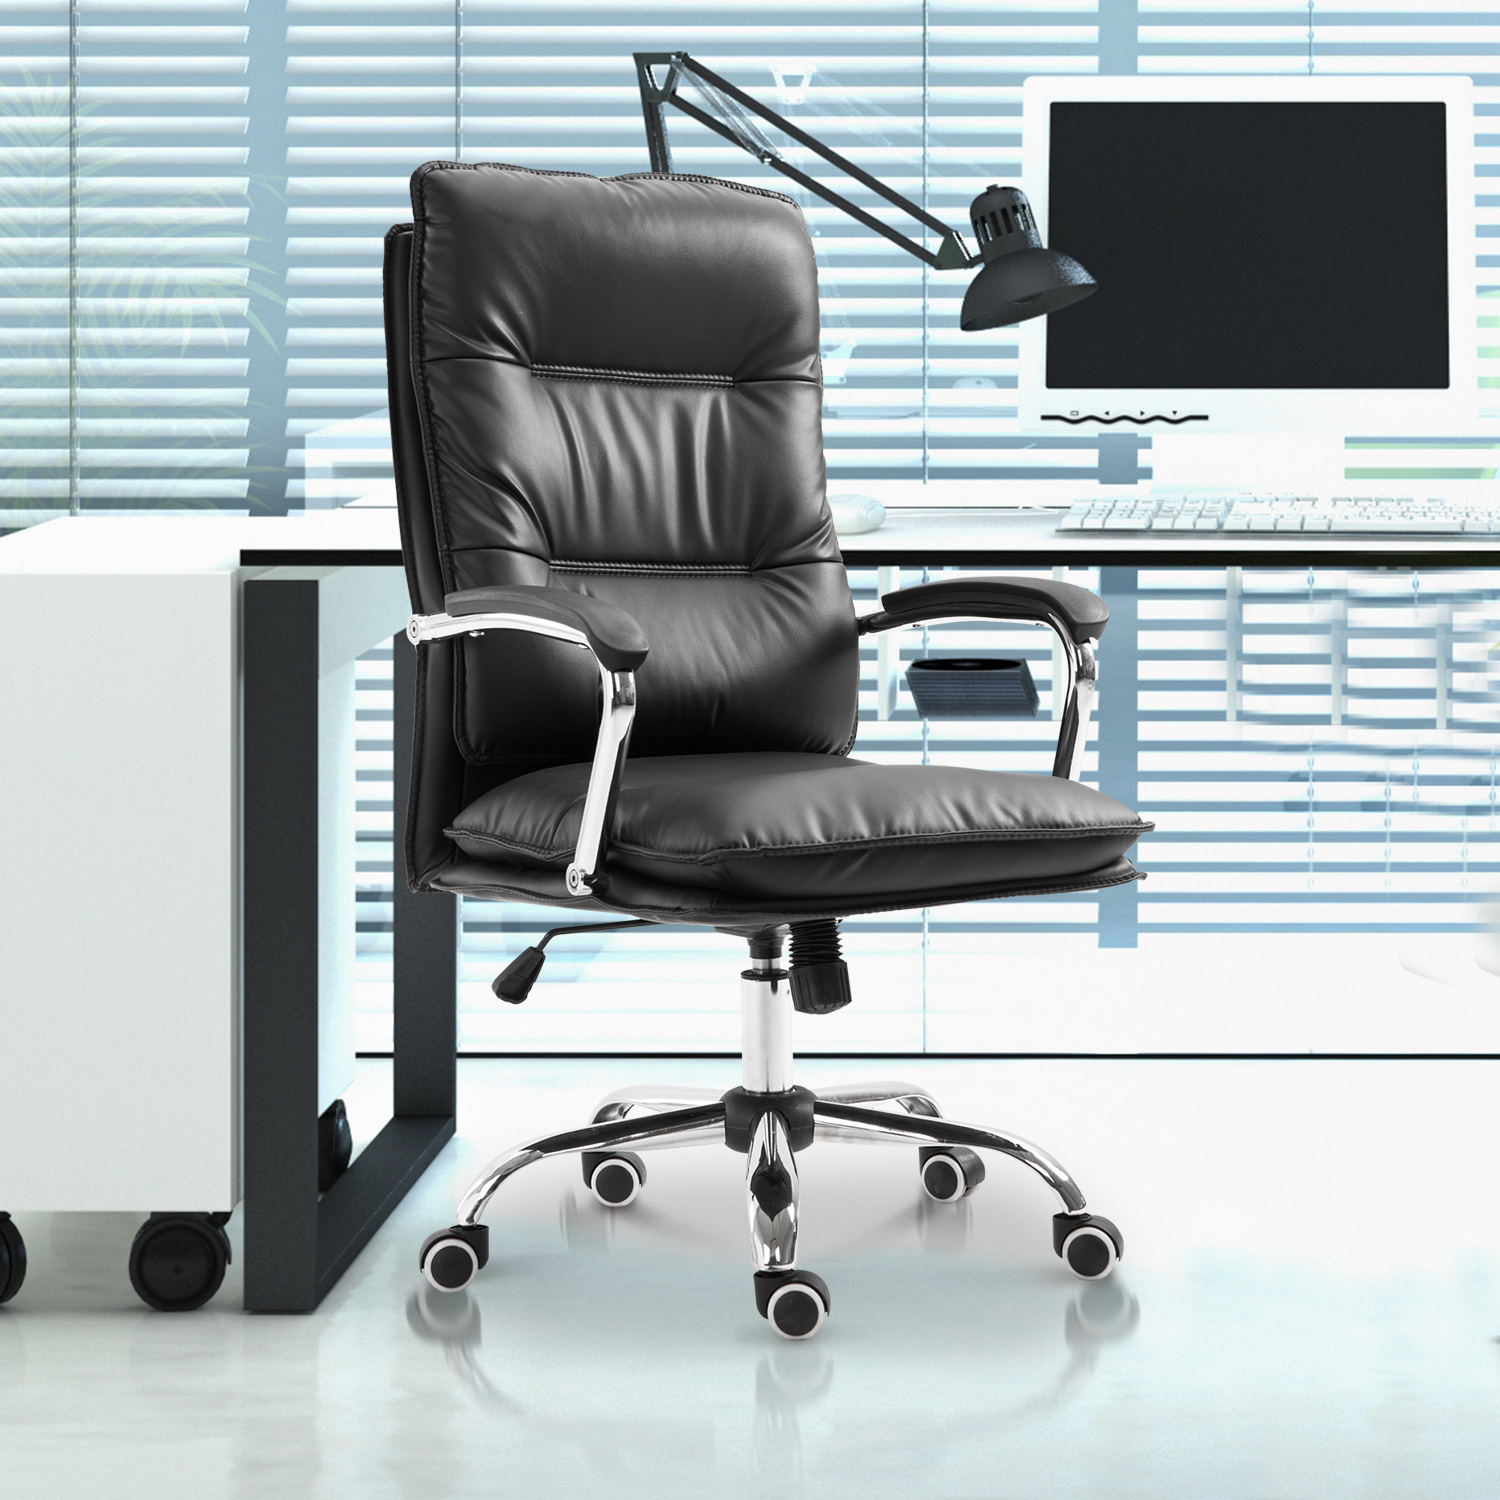 Details about high back executive home office chair computer task seat lumbar support black